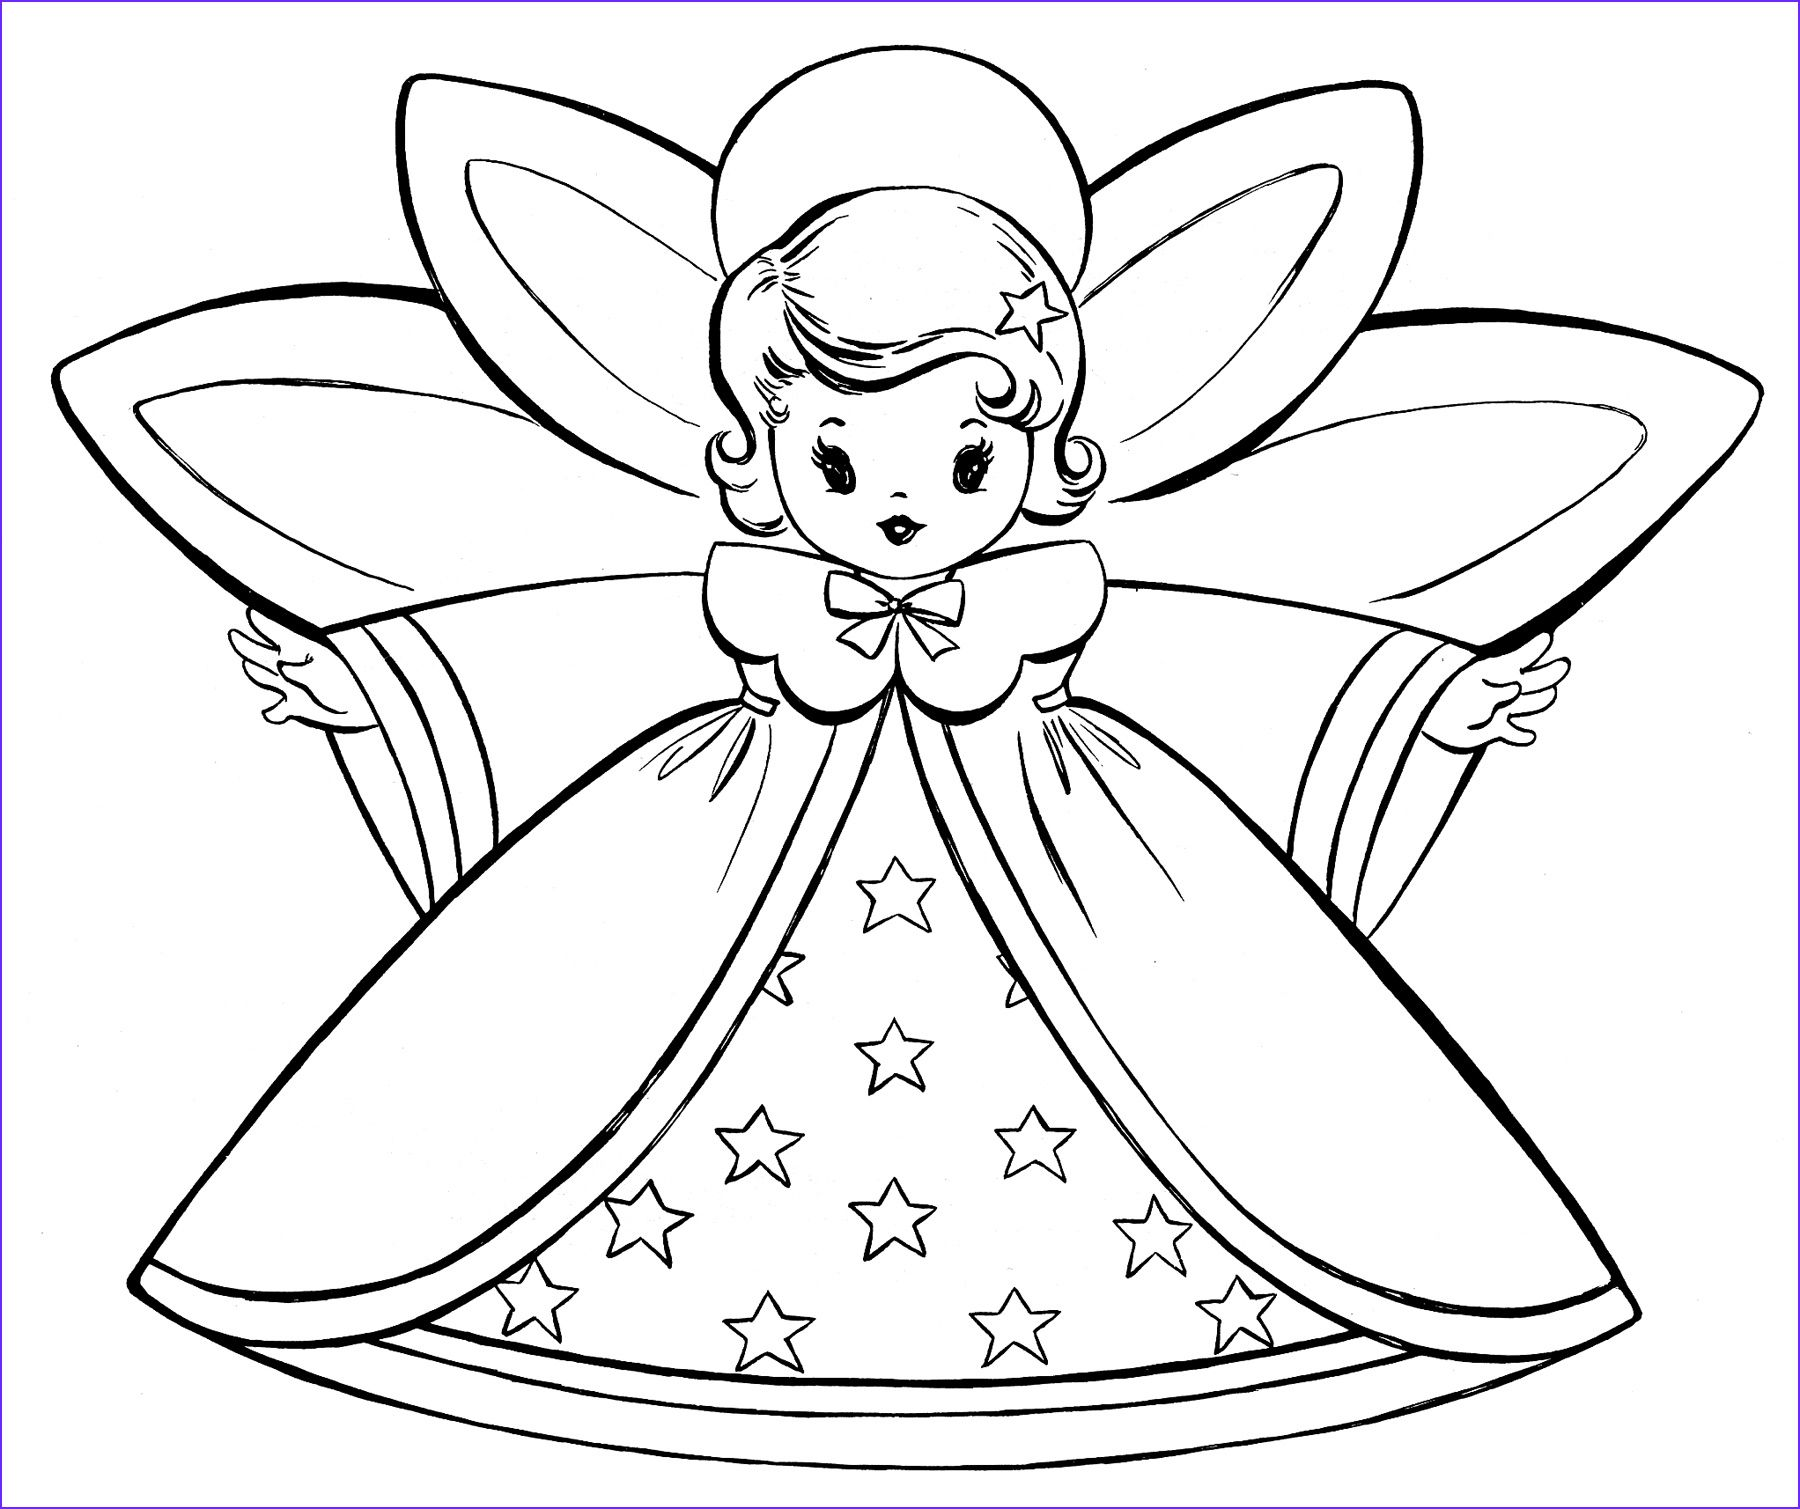 15 cool christmas angel coloring pages photos in 2020